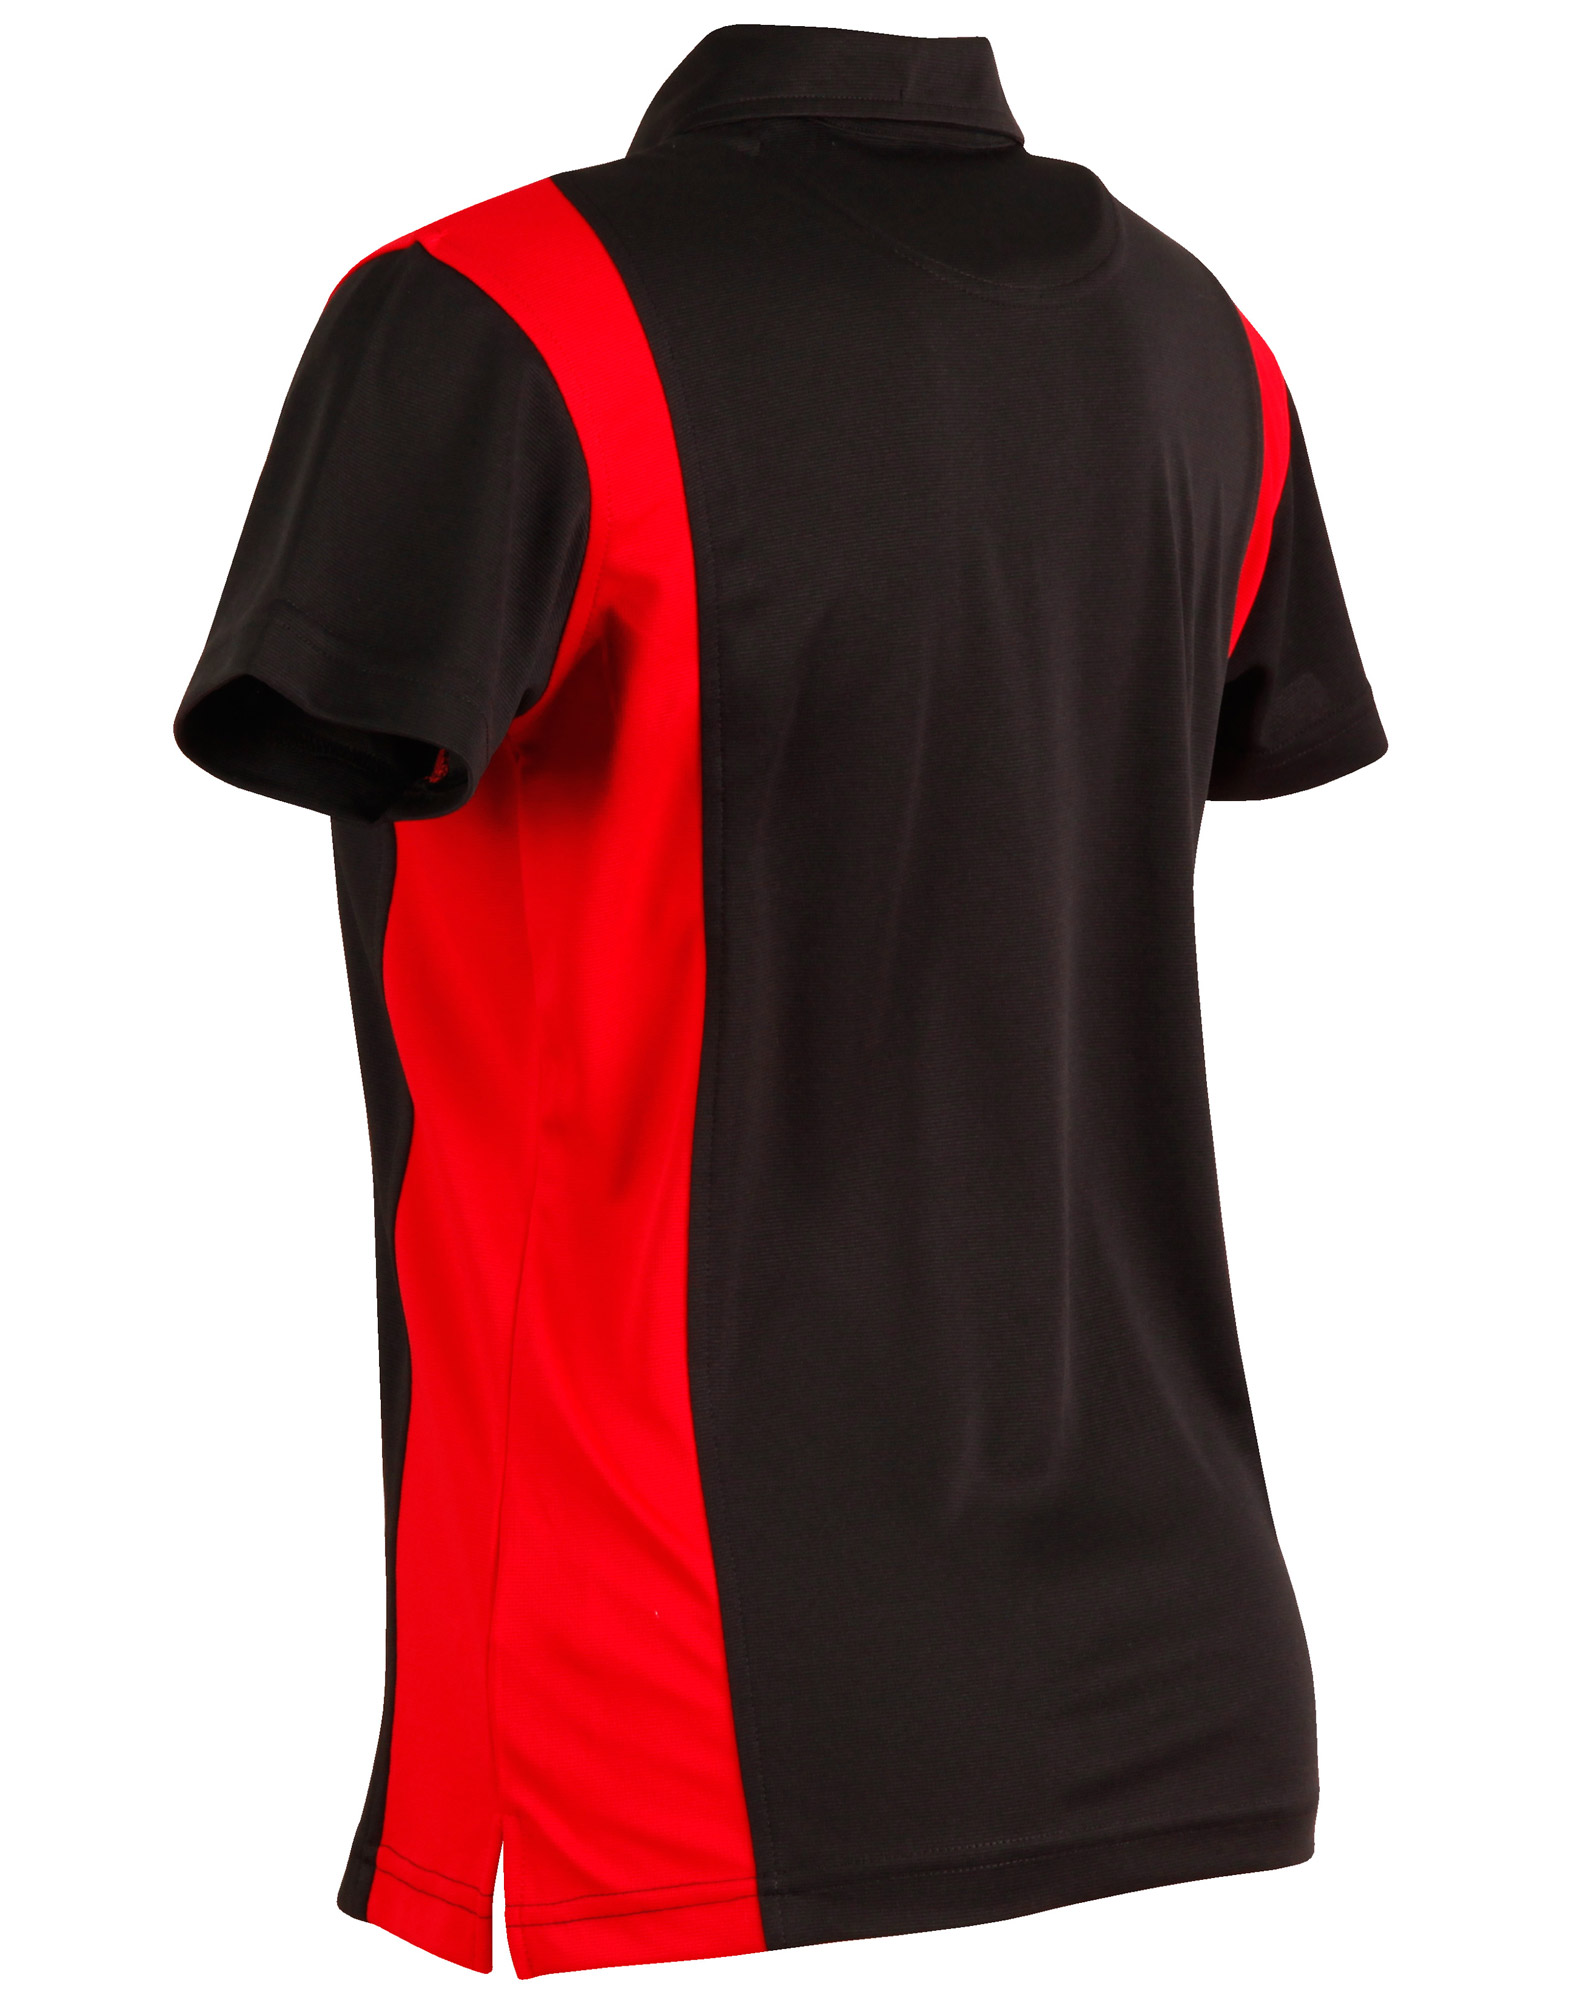 https://s3-ap-southeast-1.amazonaws.com/ws-imgs/POLOSHIRTS/PS58_BlackRed_Back3Q_l.jpg